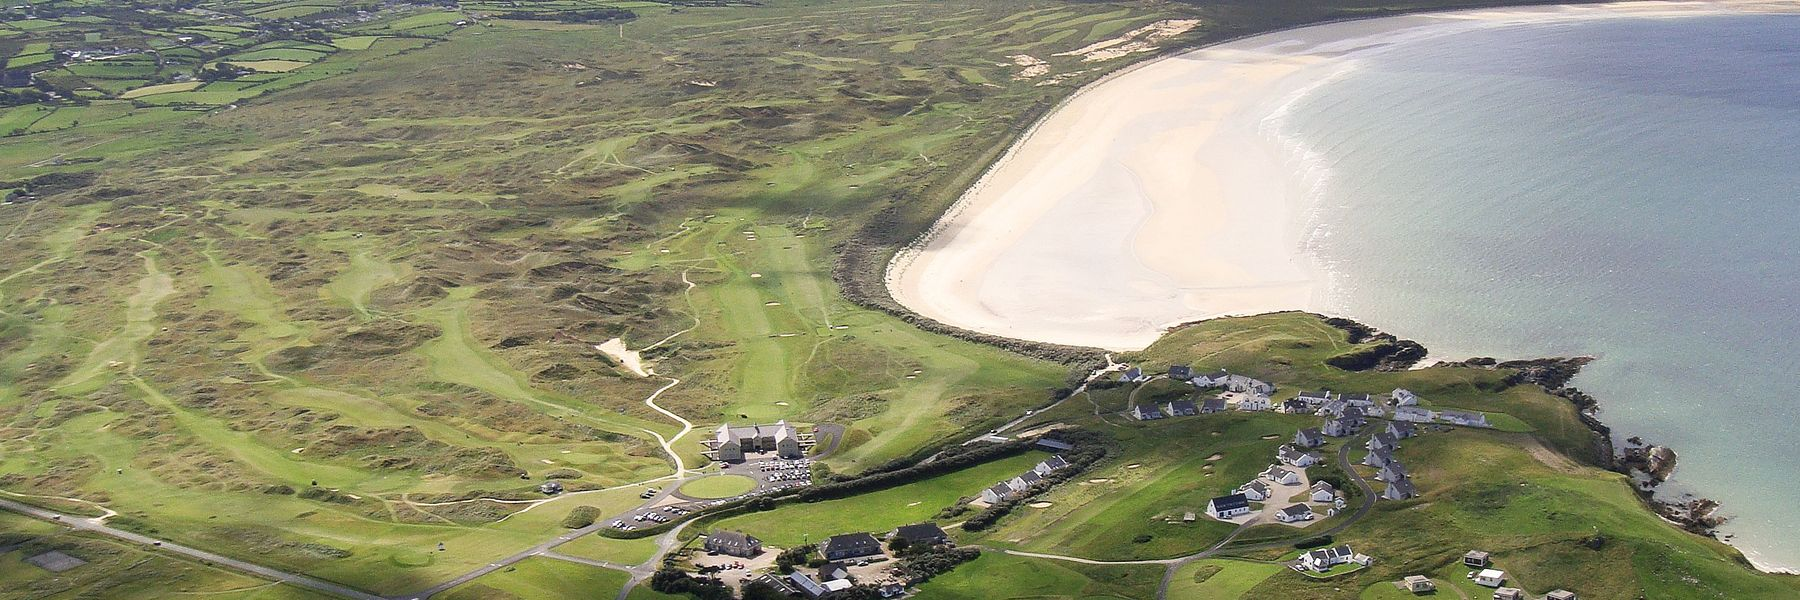 Golf Vacation Package - Ireland North - 6 Nights and 5 Rounds with vehicle for $1629!